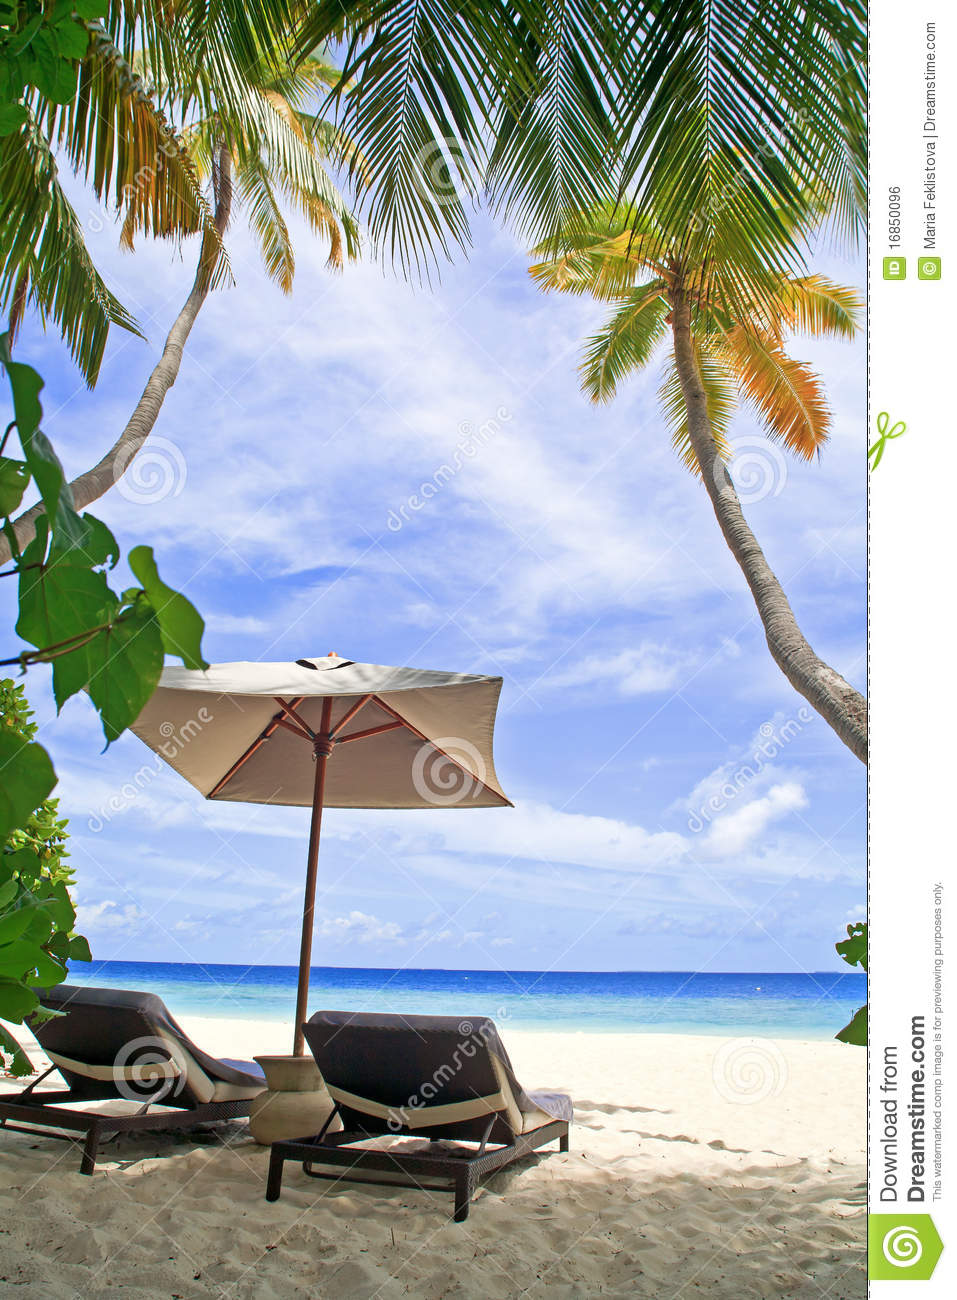 Couples retreat royalty free stock image image 16850096 for How to plan a couples retreat